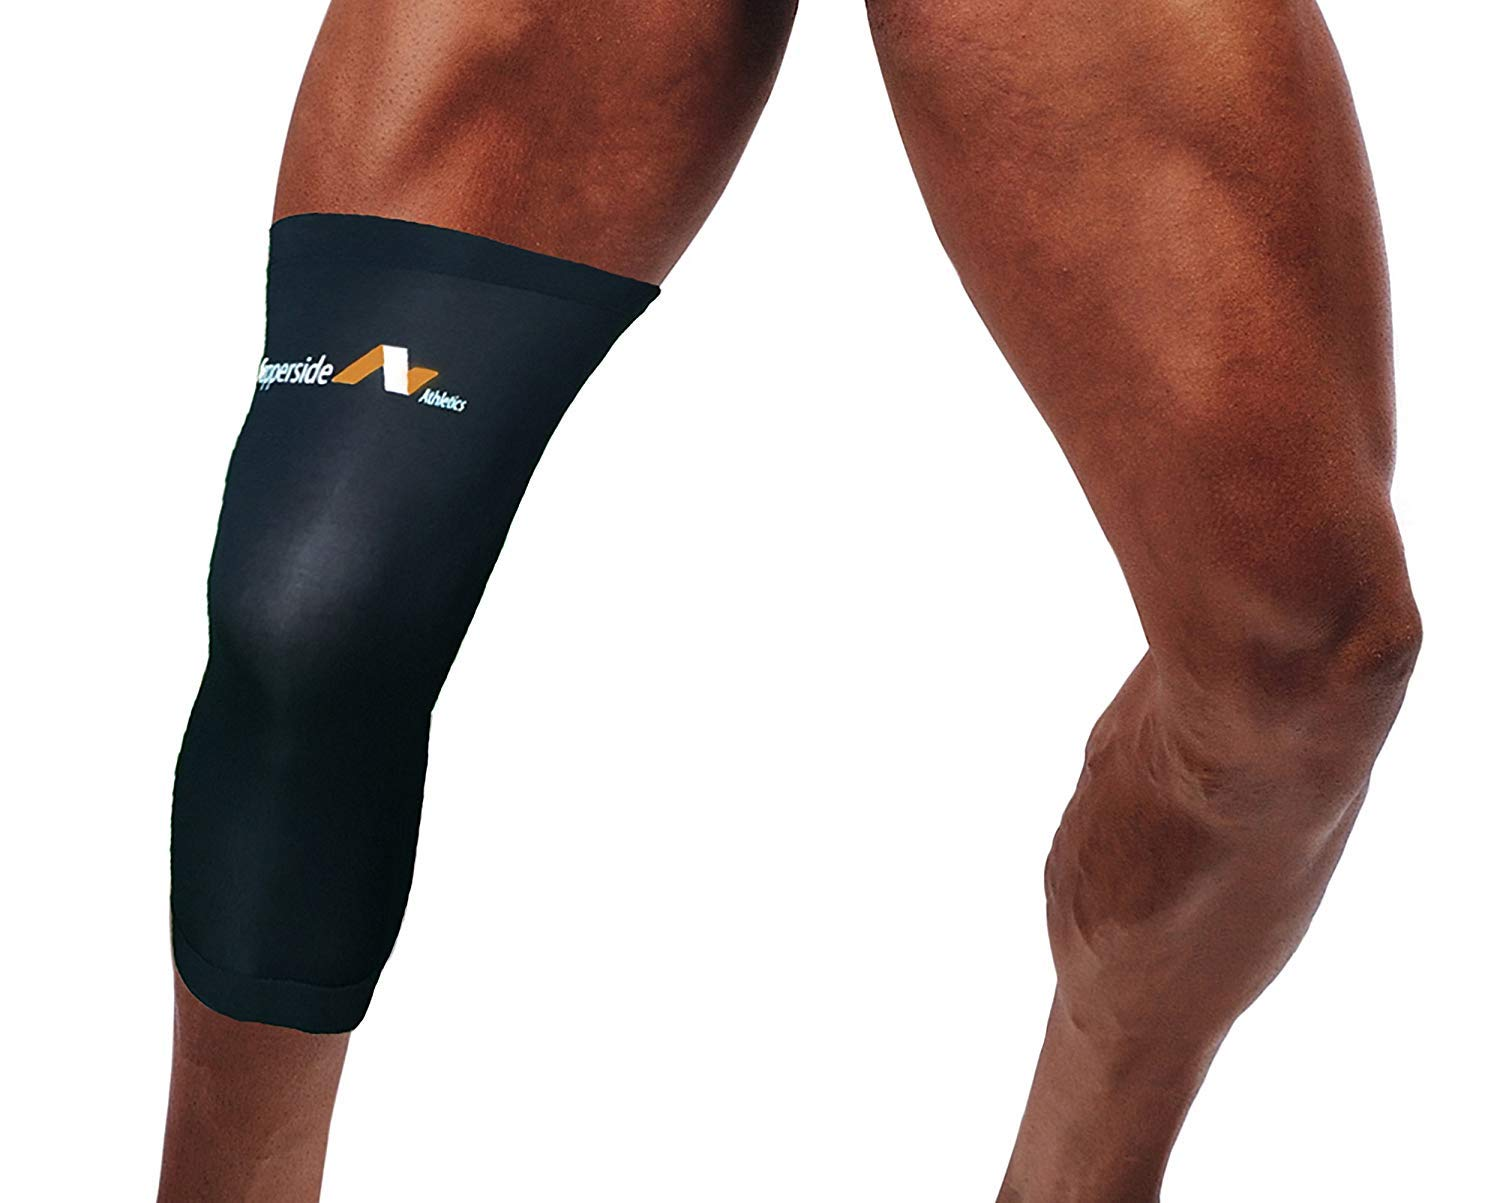 Copperside Athletics Premium Copper Compression Knee Sleeve - GUARANTEED Recovery & Healing-Performance for Muscle and Joint Support - Top Notch Quality-Comfortable to Wear - Not a Tommie Brace by Copperside Athletics   B01483DPO2